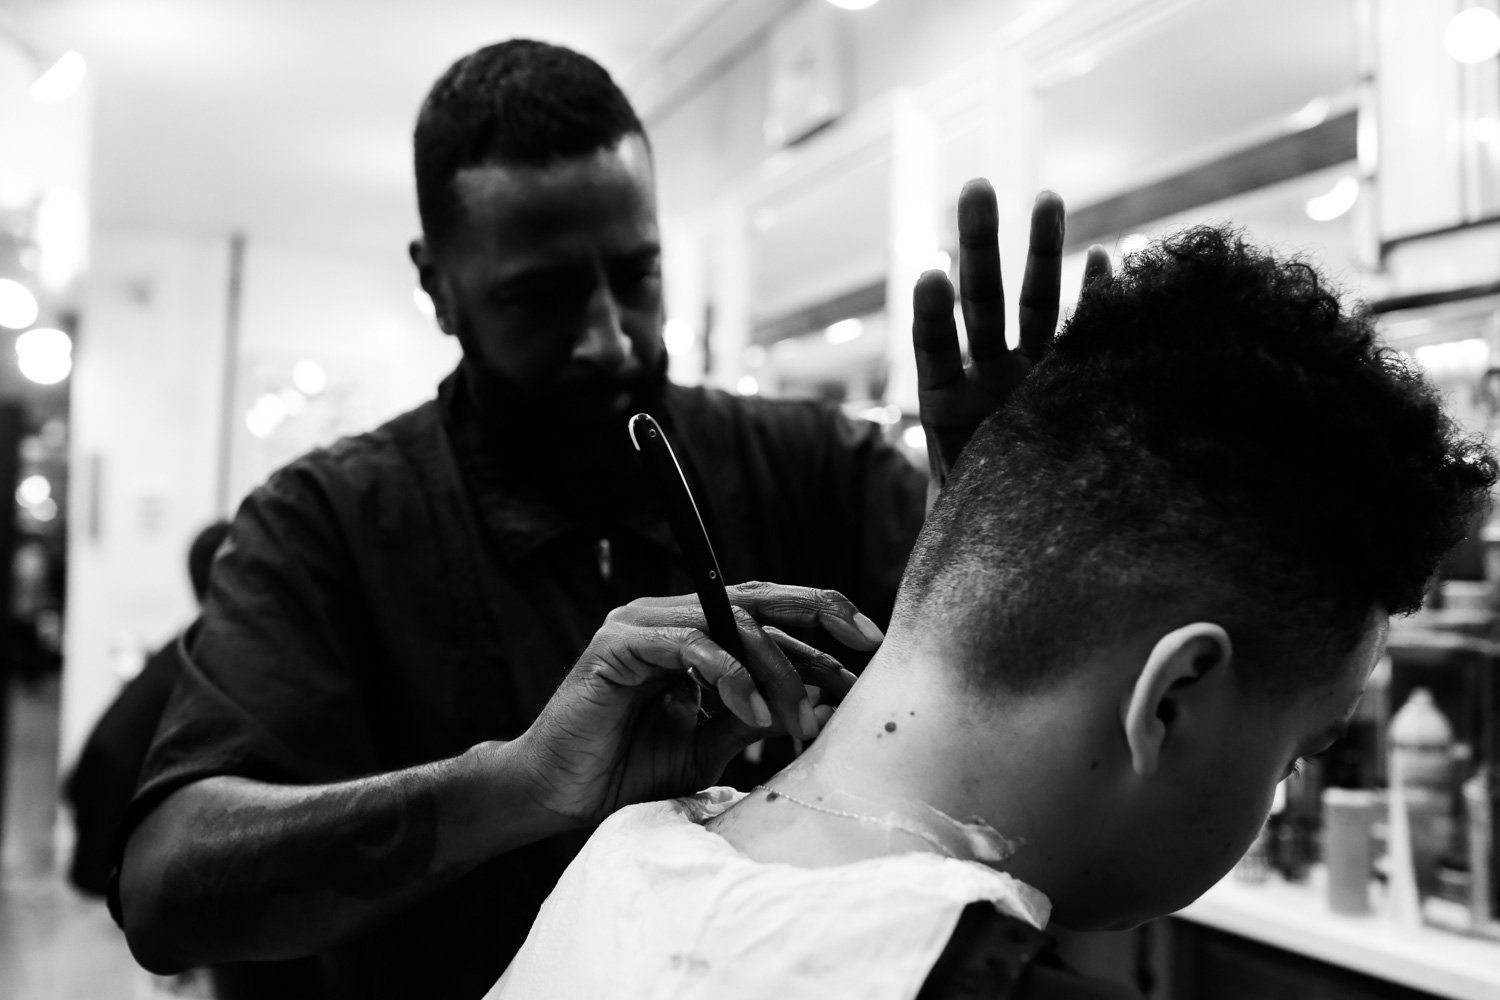 Demesio also believes the grooming that barber shops provide alternatively is spiritual for black men if youre confident in your image